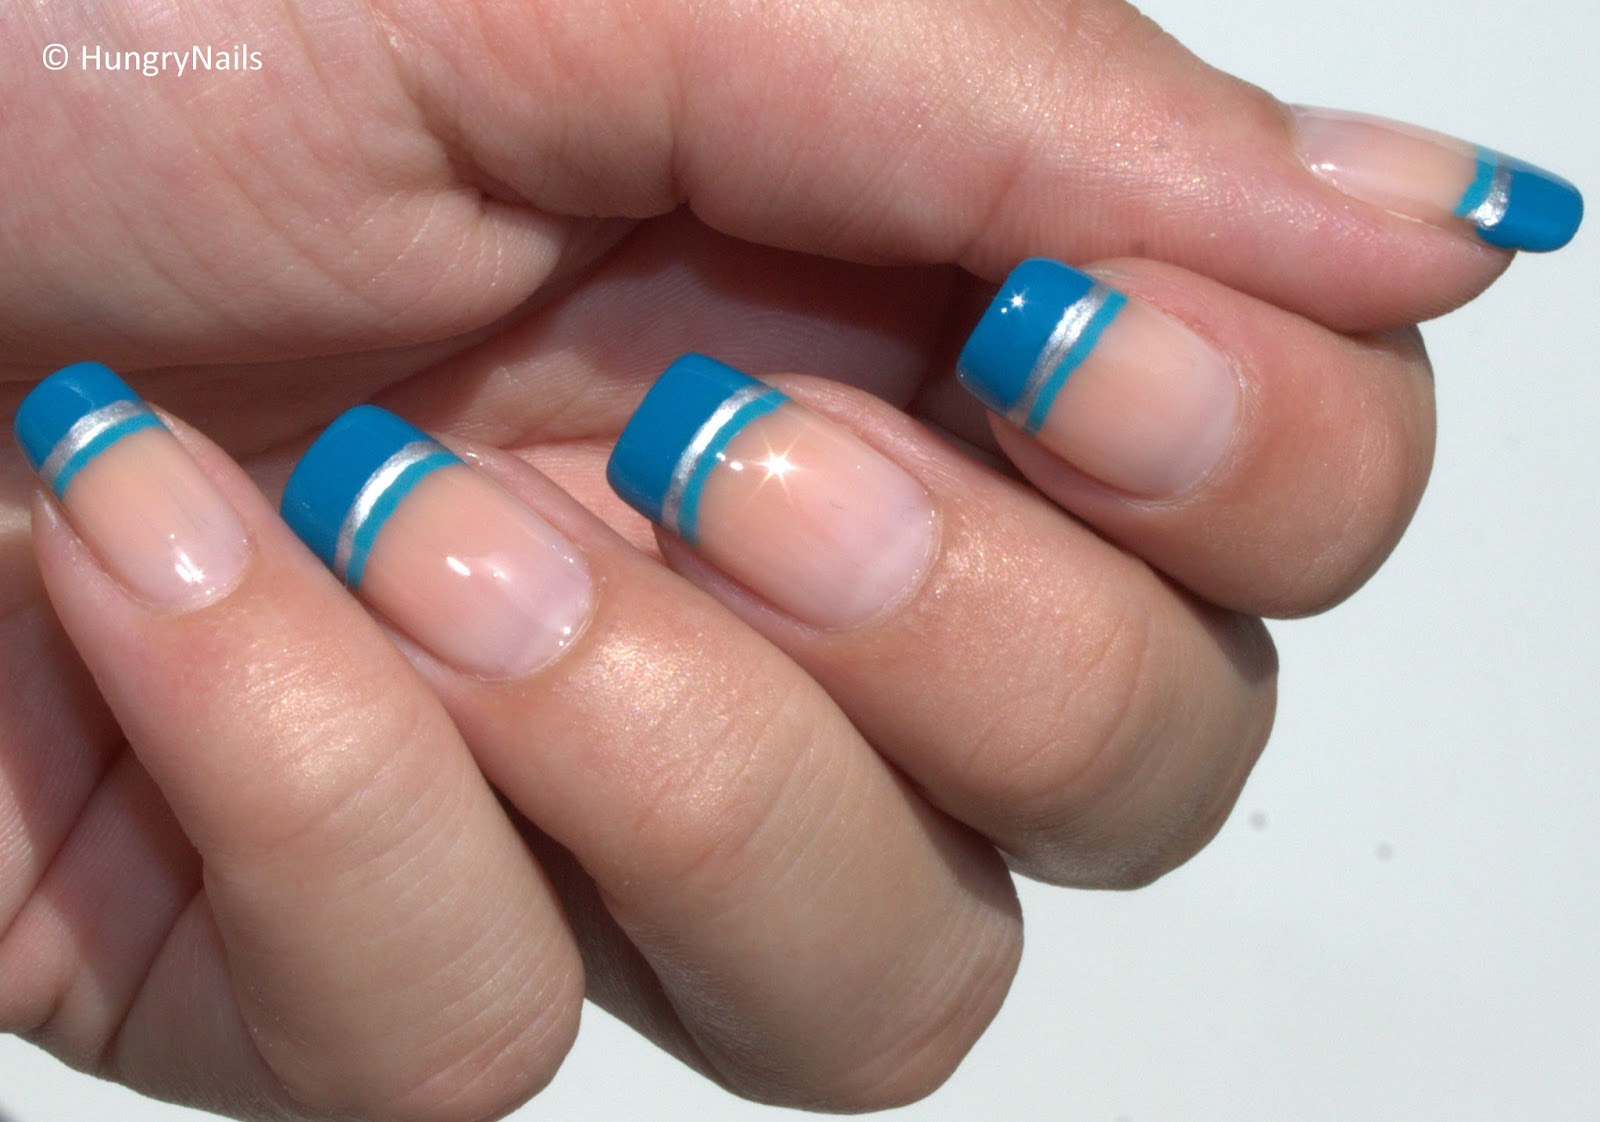 Maybelline Woche #2 | Blue French Nails - HungryNails Blog | Die ...